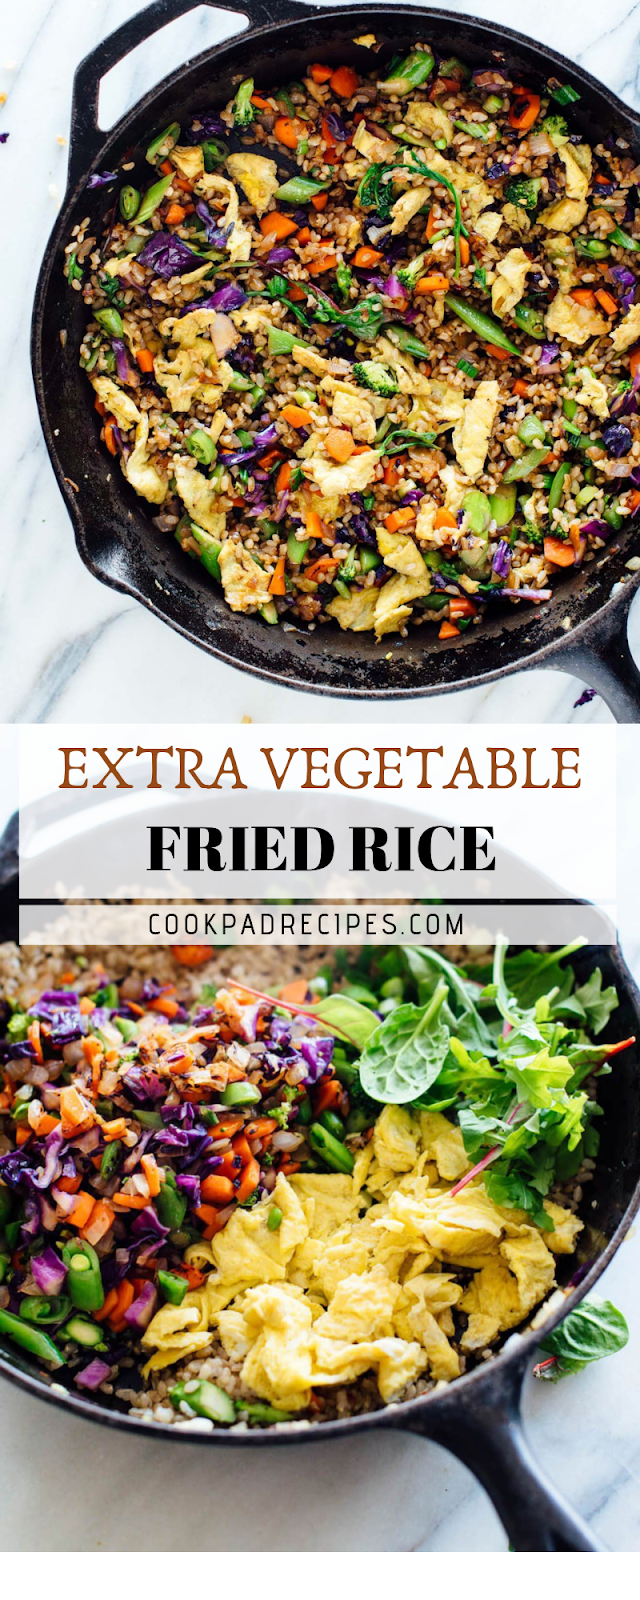 Extrа Vegetable Fried Rice